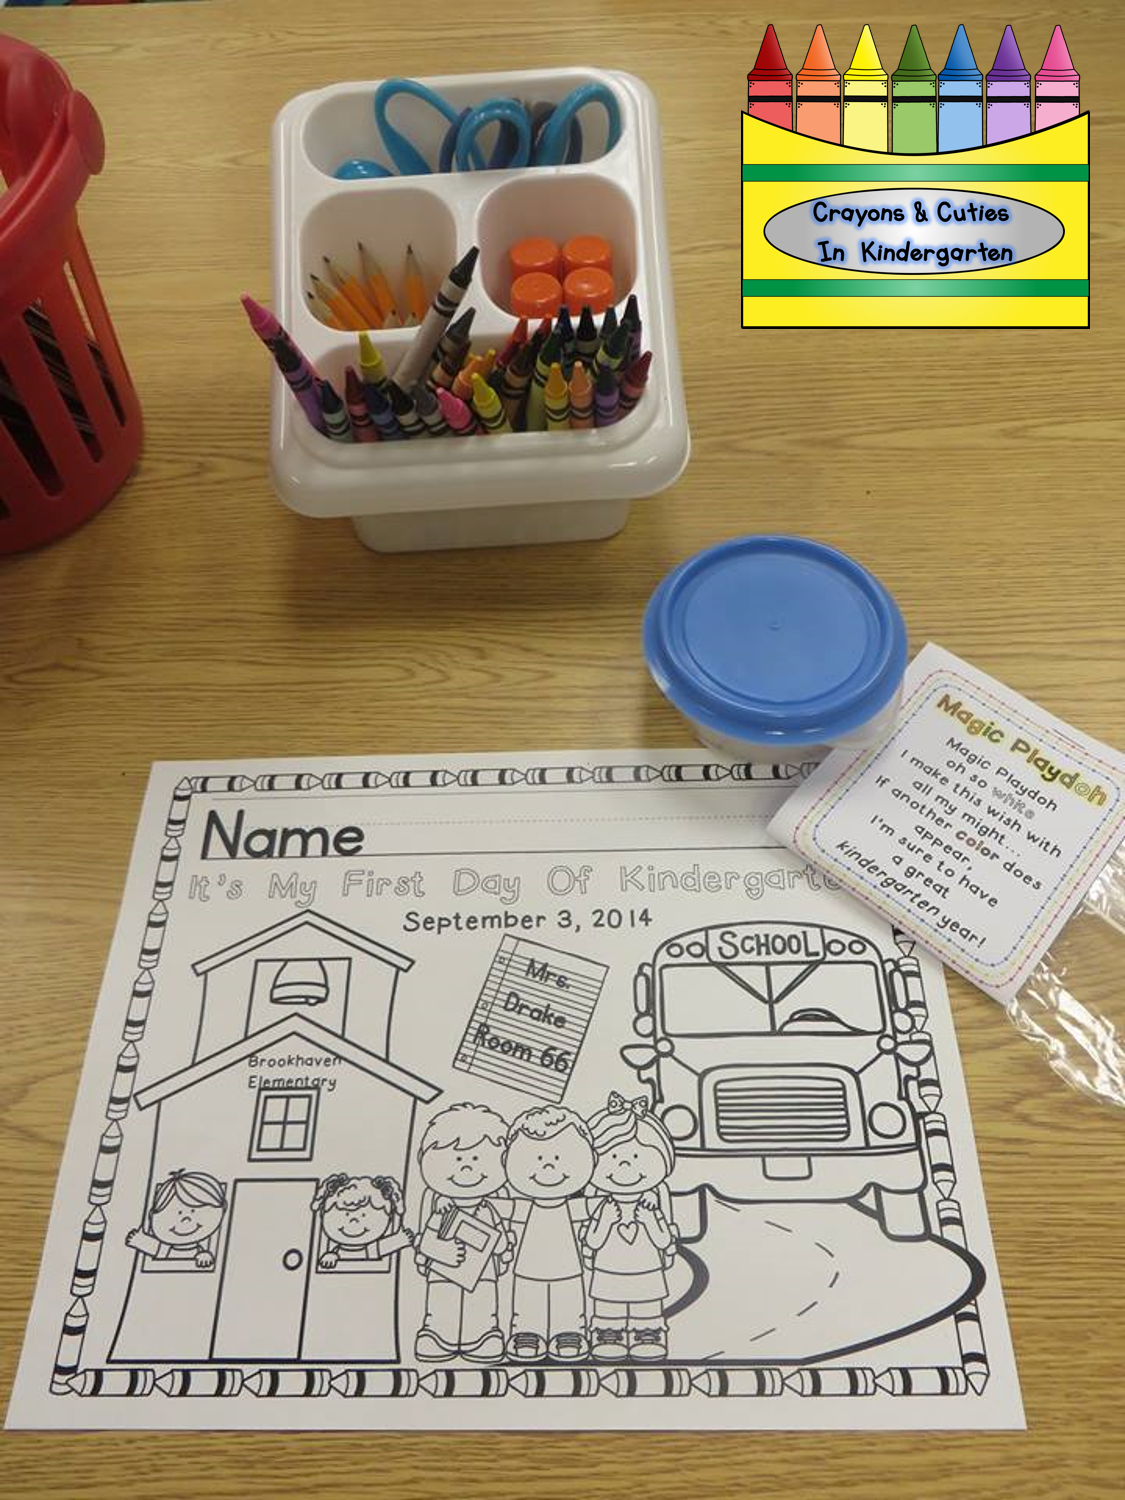 Crayons & Cuties In Kindergarten: First Day of School Coloring Page ...